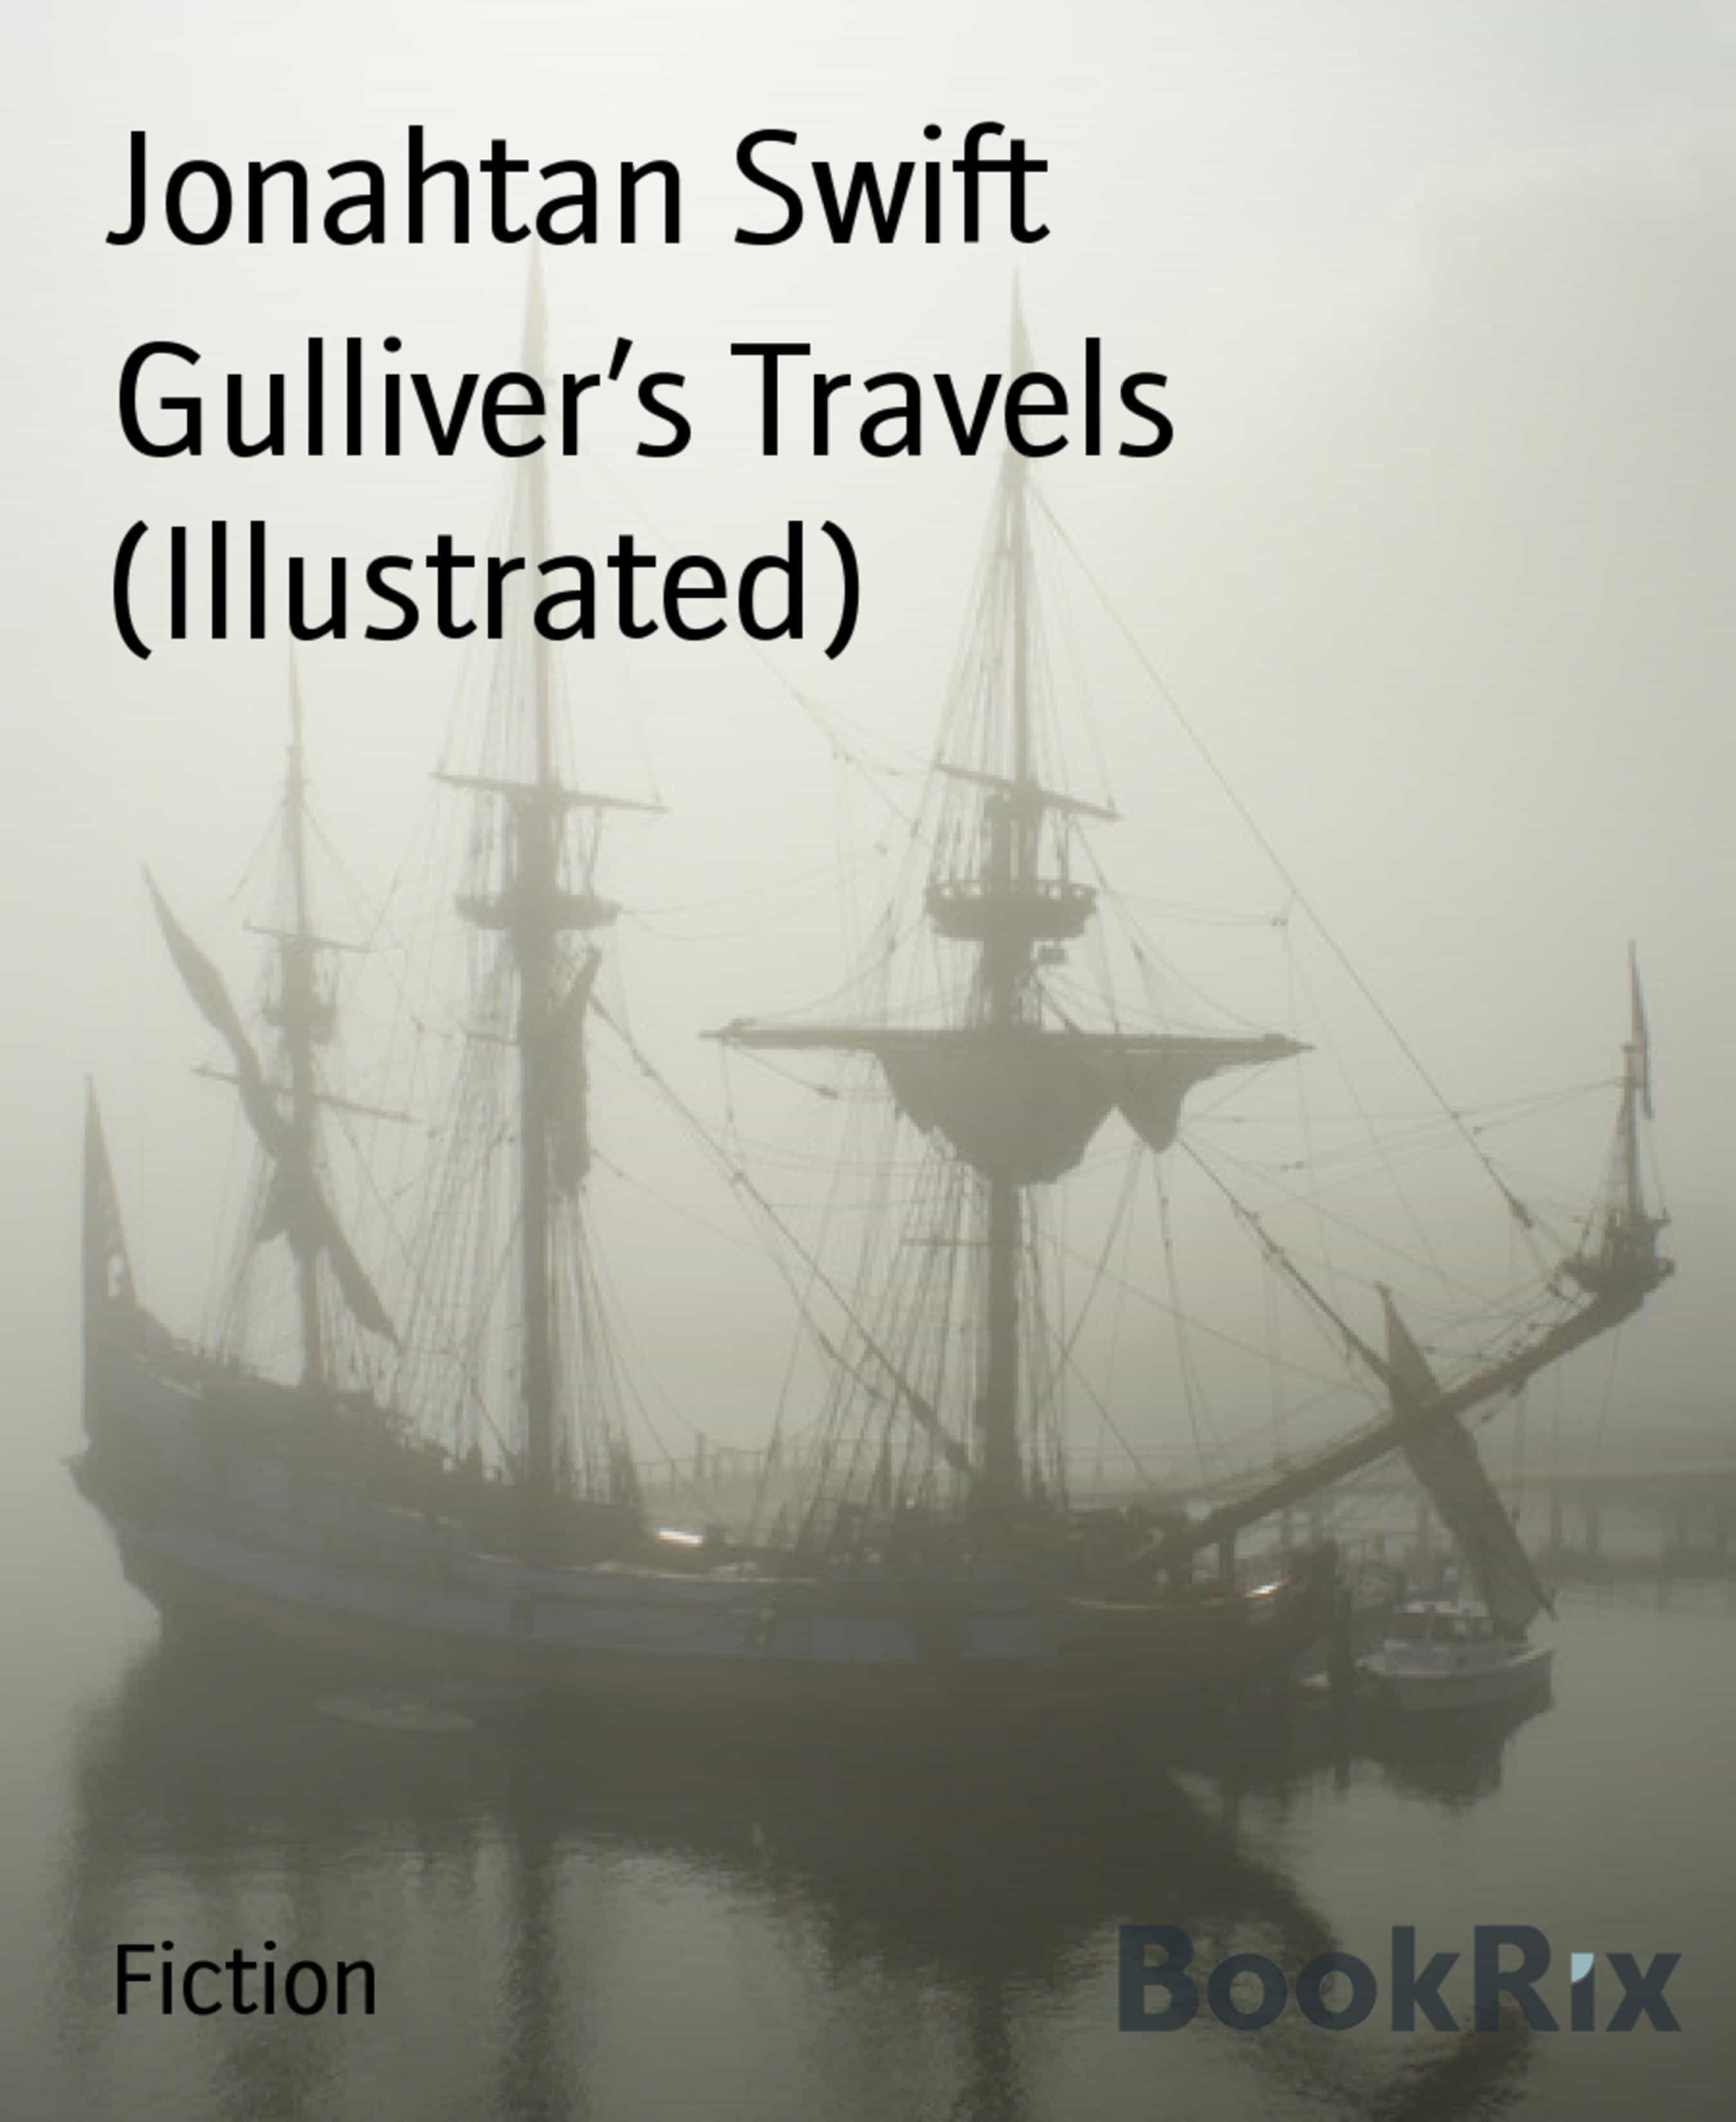 GULLIVER'S TRAVELS (ILLUSTRATED)